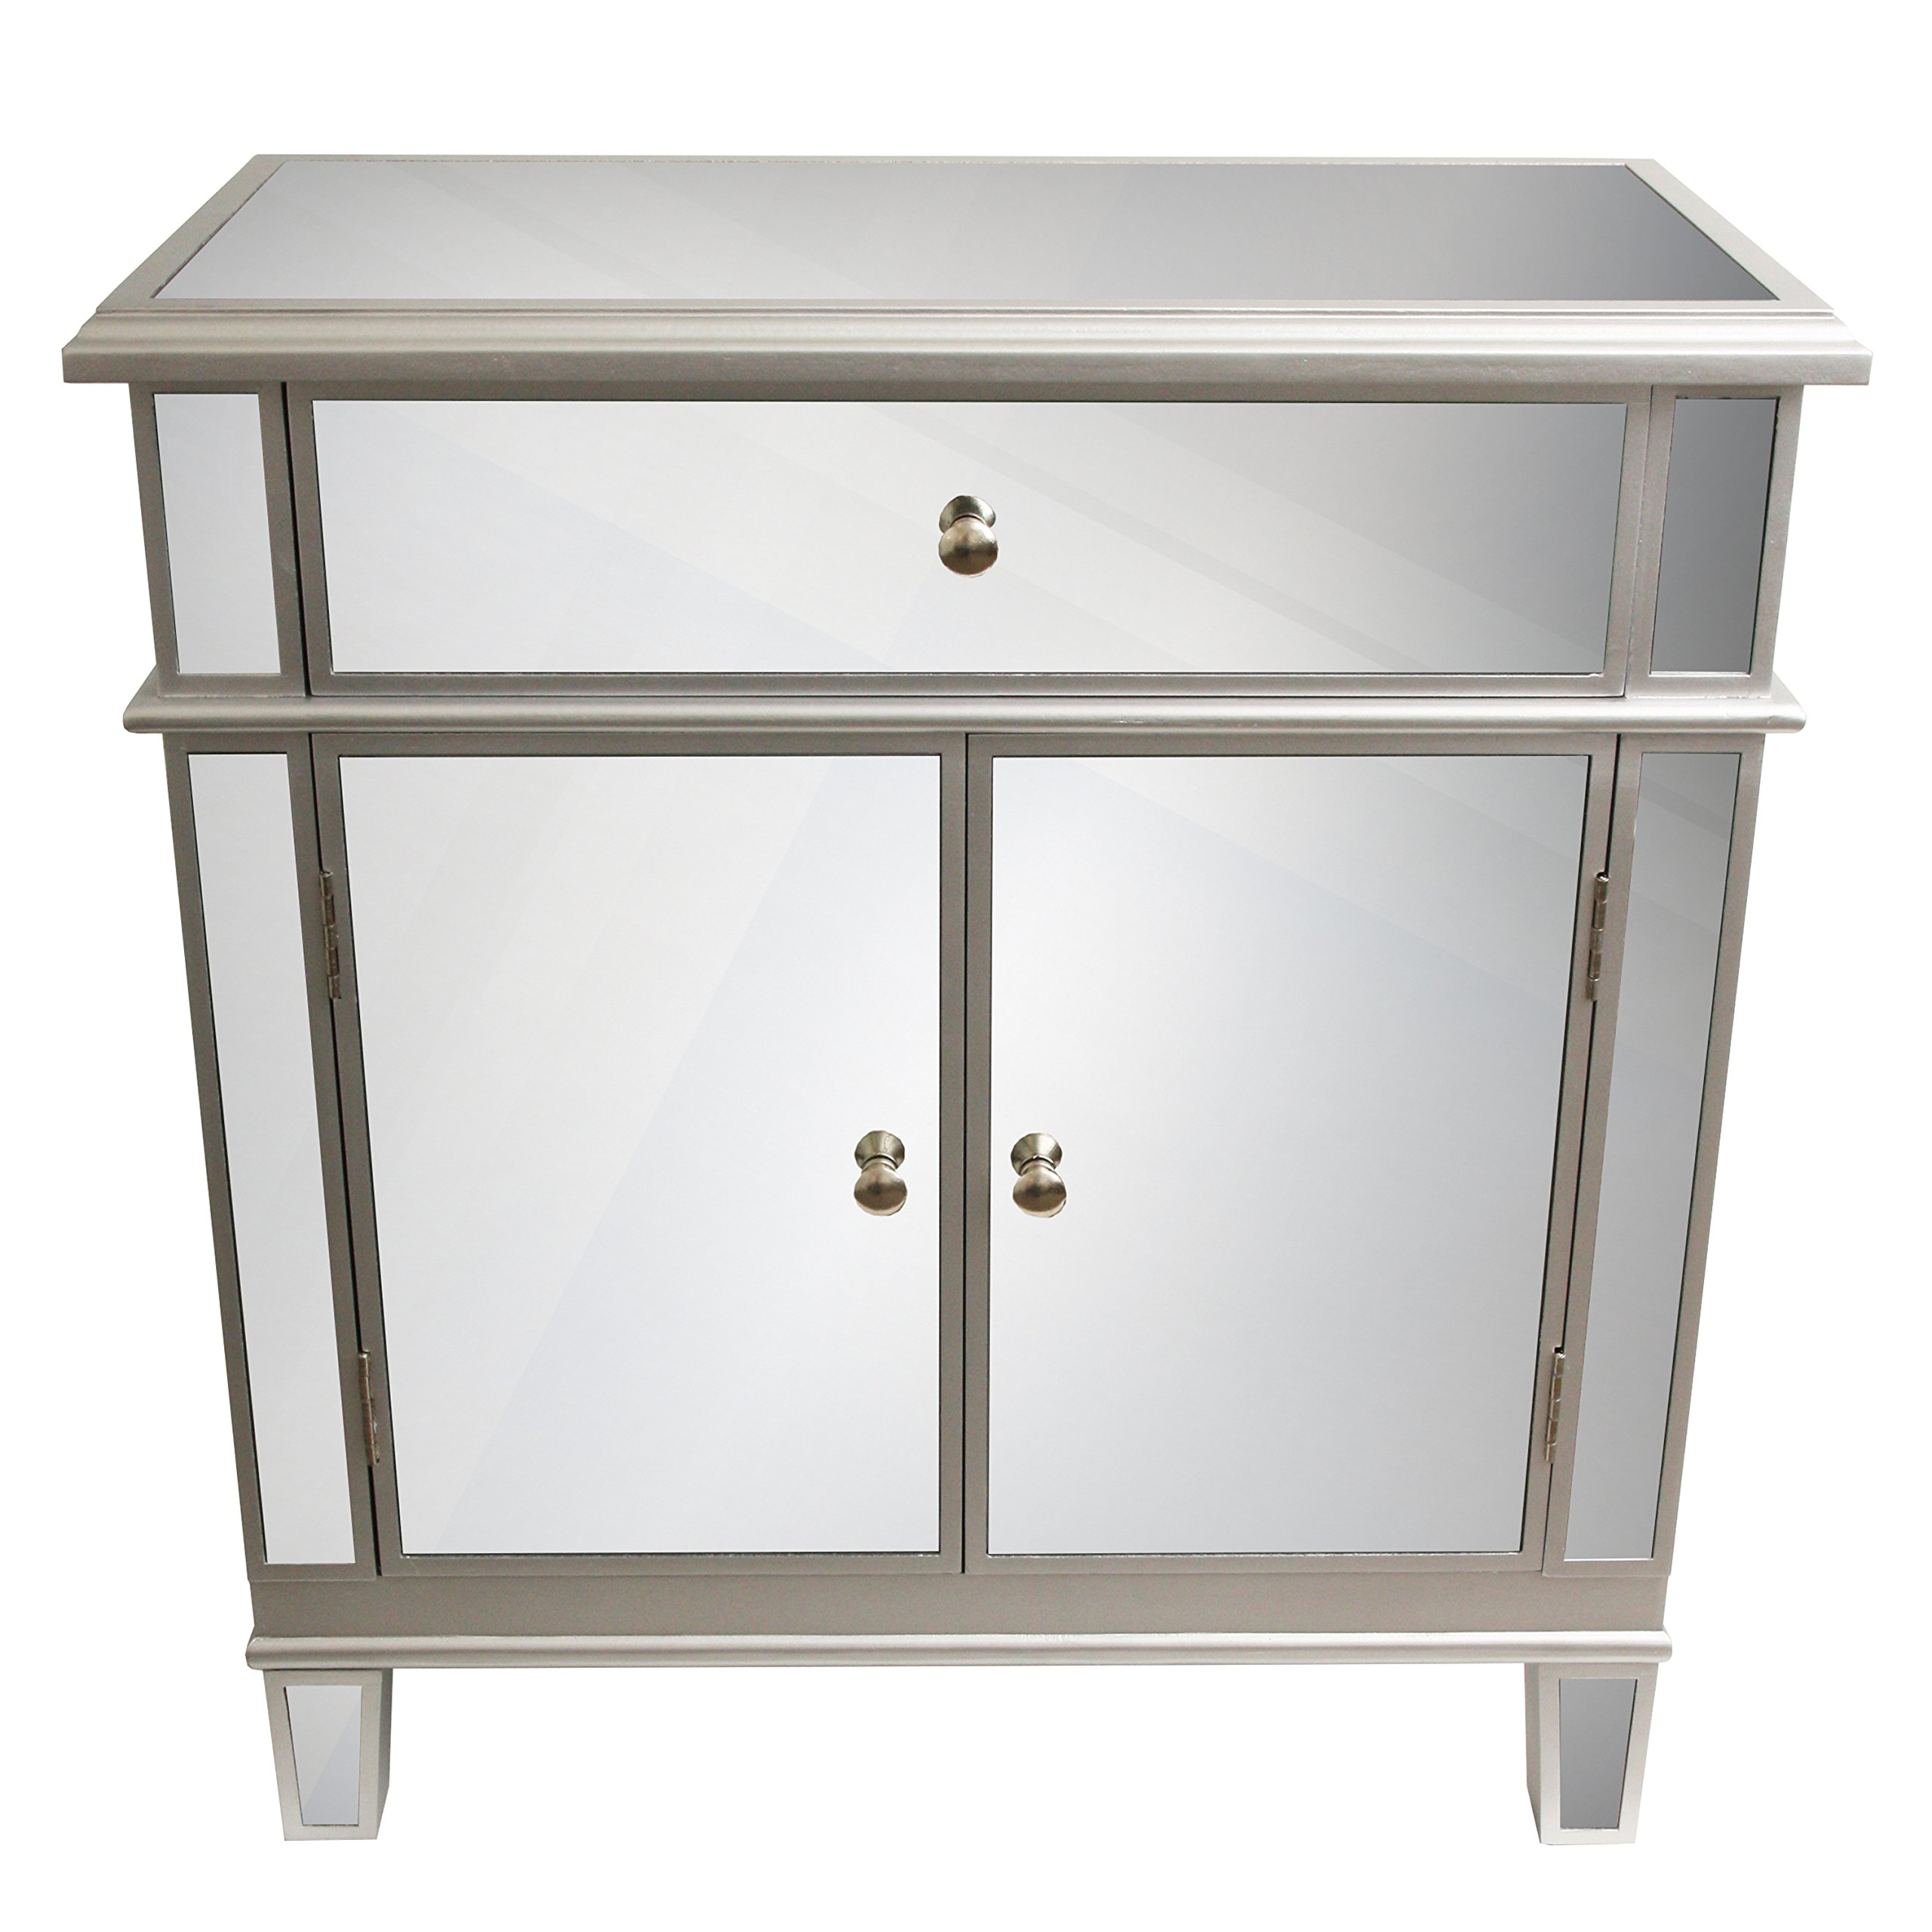 Décor Therapy FR1792 Mirrored Chest, Silver Finish, 16'' W x 32'' D x 32'' H